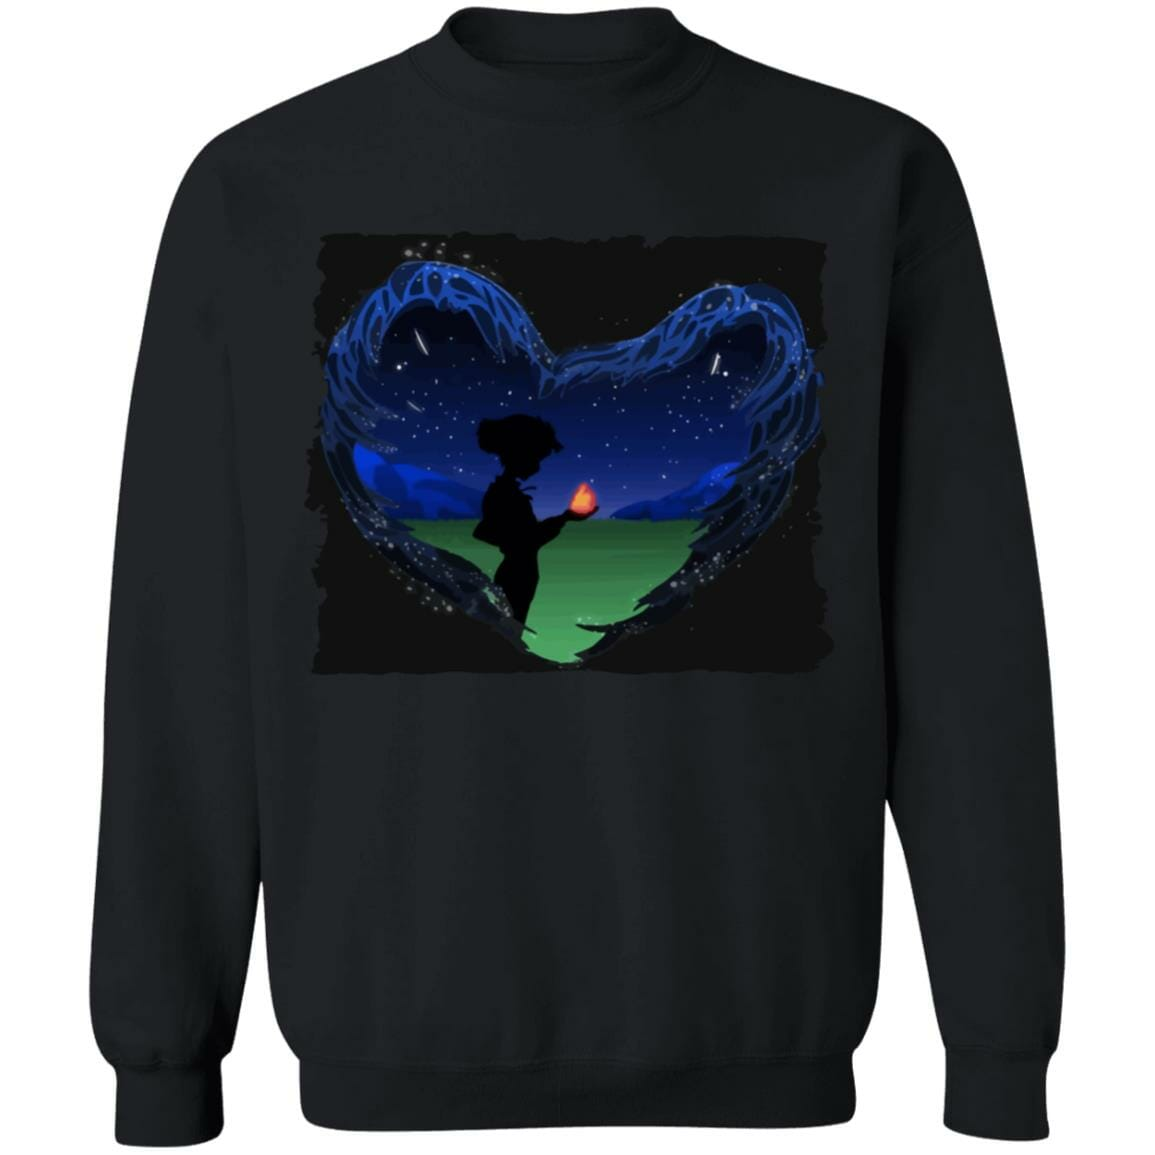 Howl's Moving Castle – Howl meets Calcifer Classic Sweatshirt